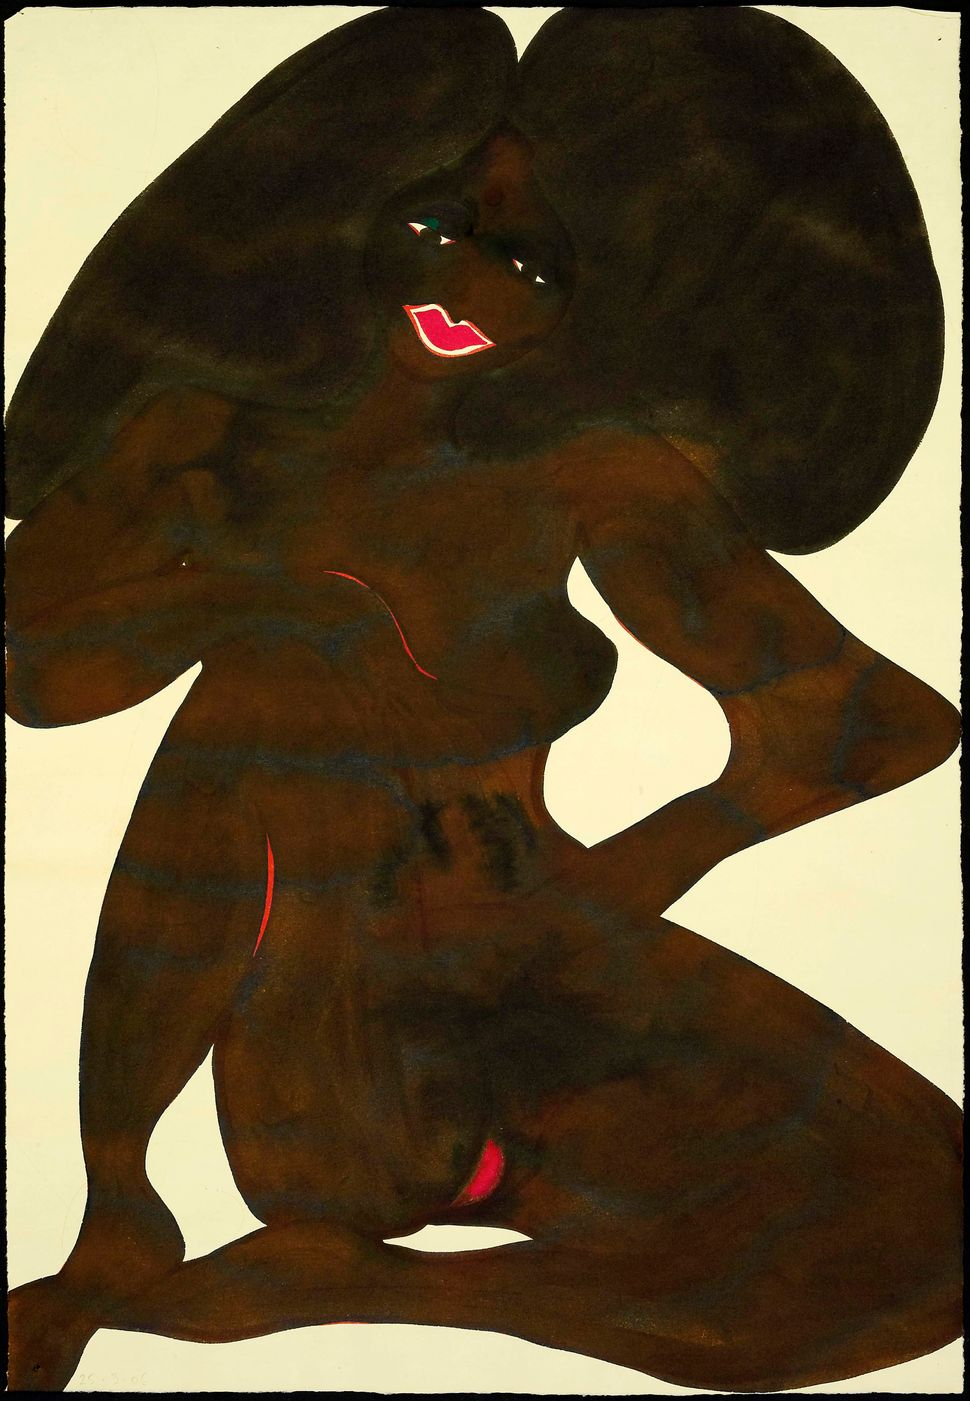 Chris Ofili, Untitled (Afronude), 2006, Watercolour and pencil on paper, 63.5 x 43.2cm, Private collection, London.